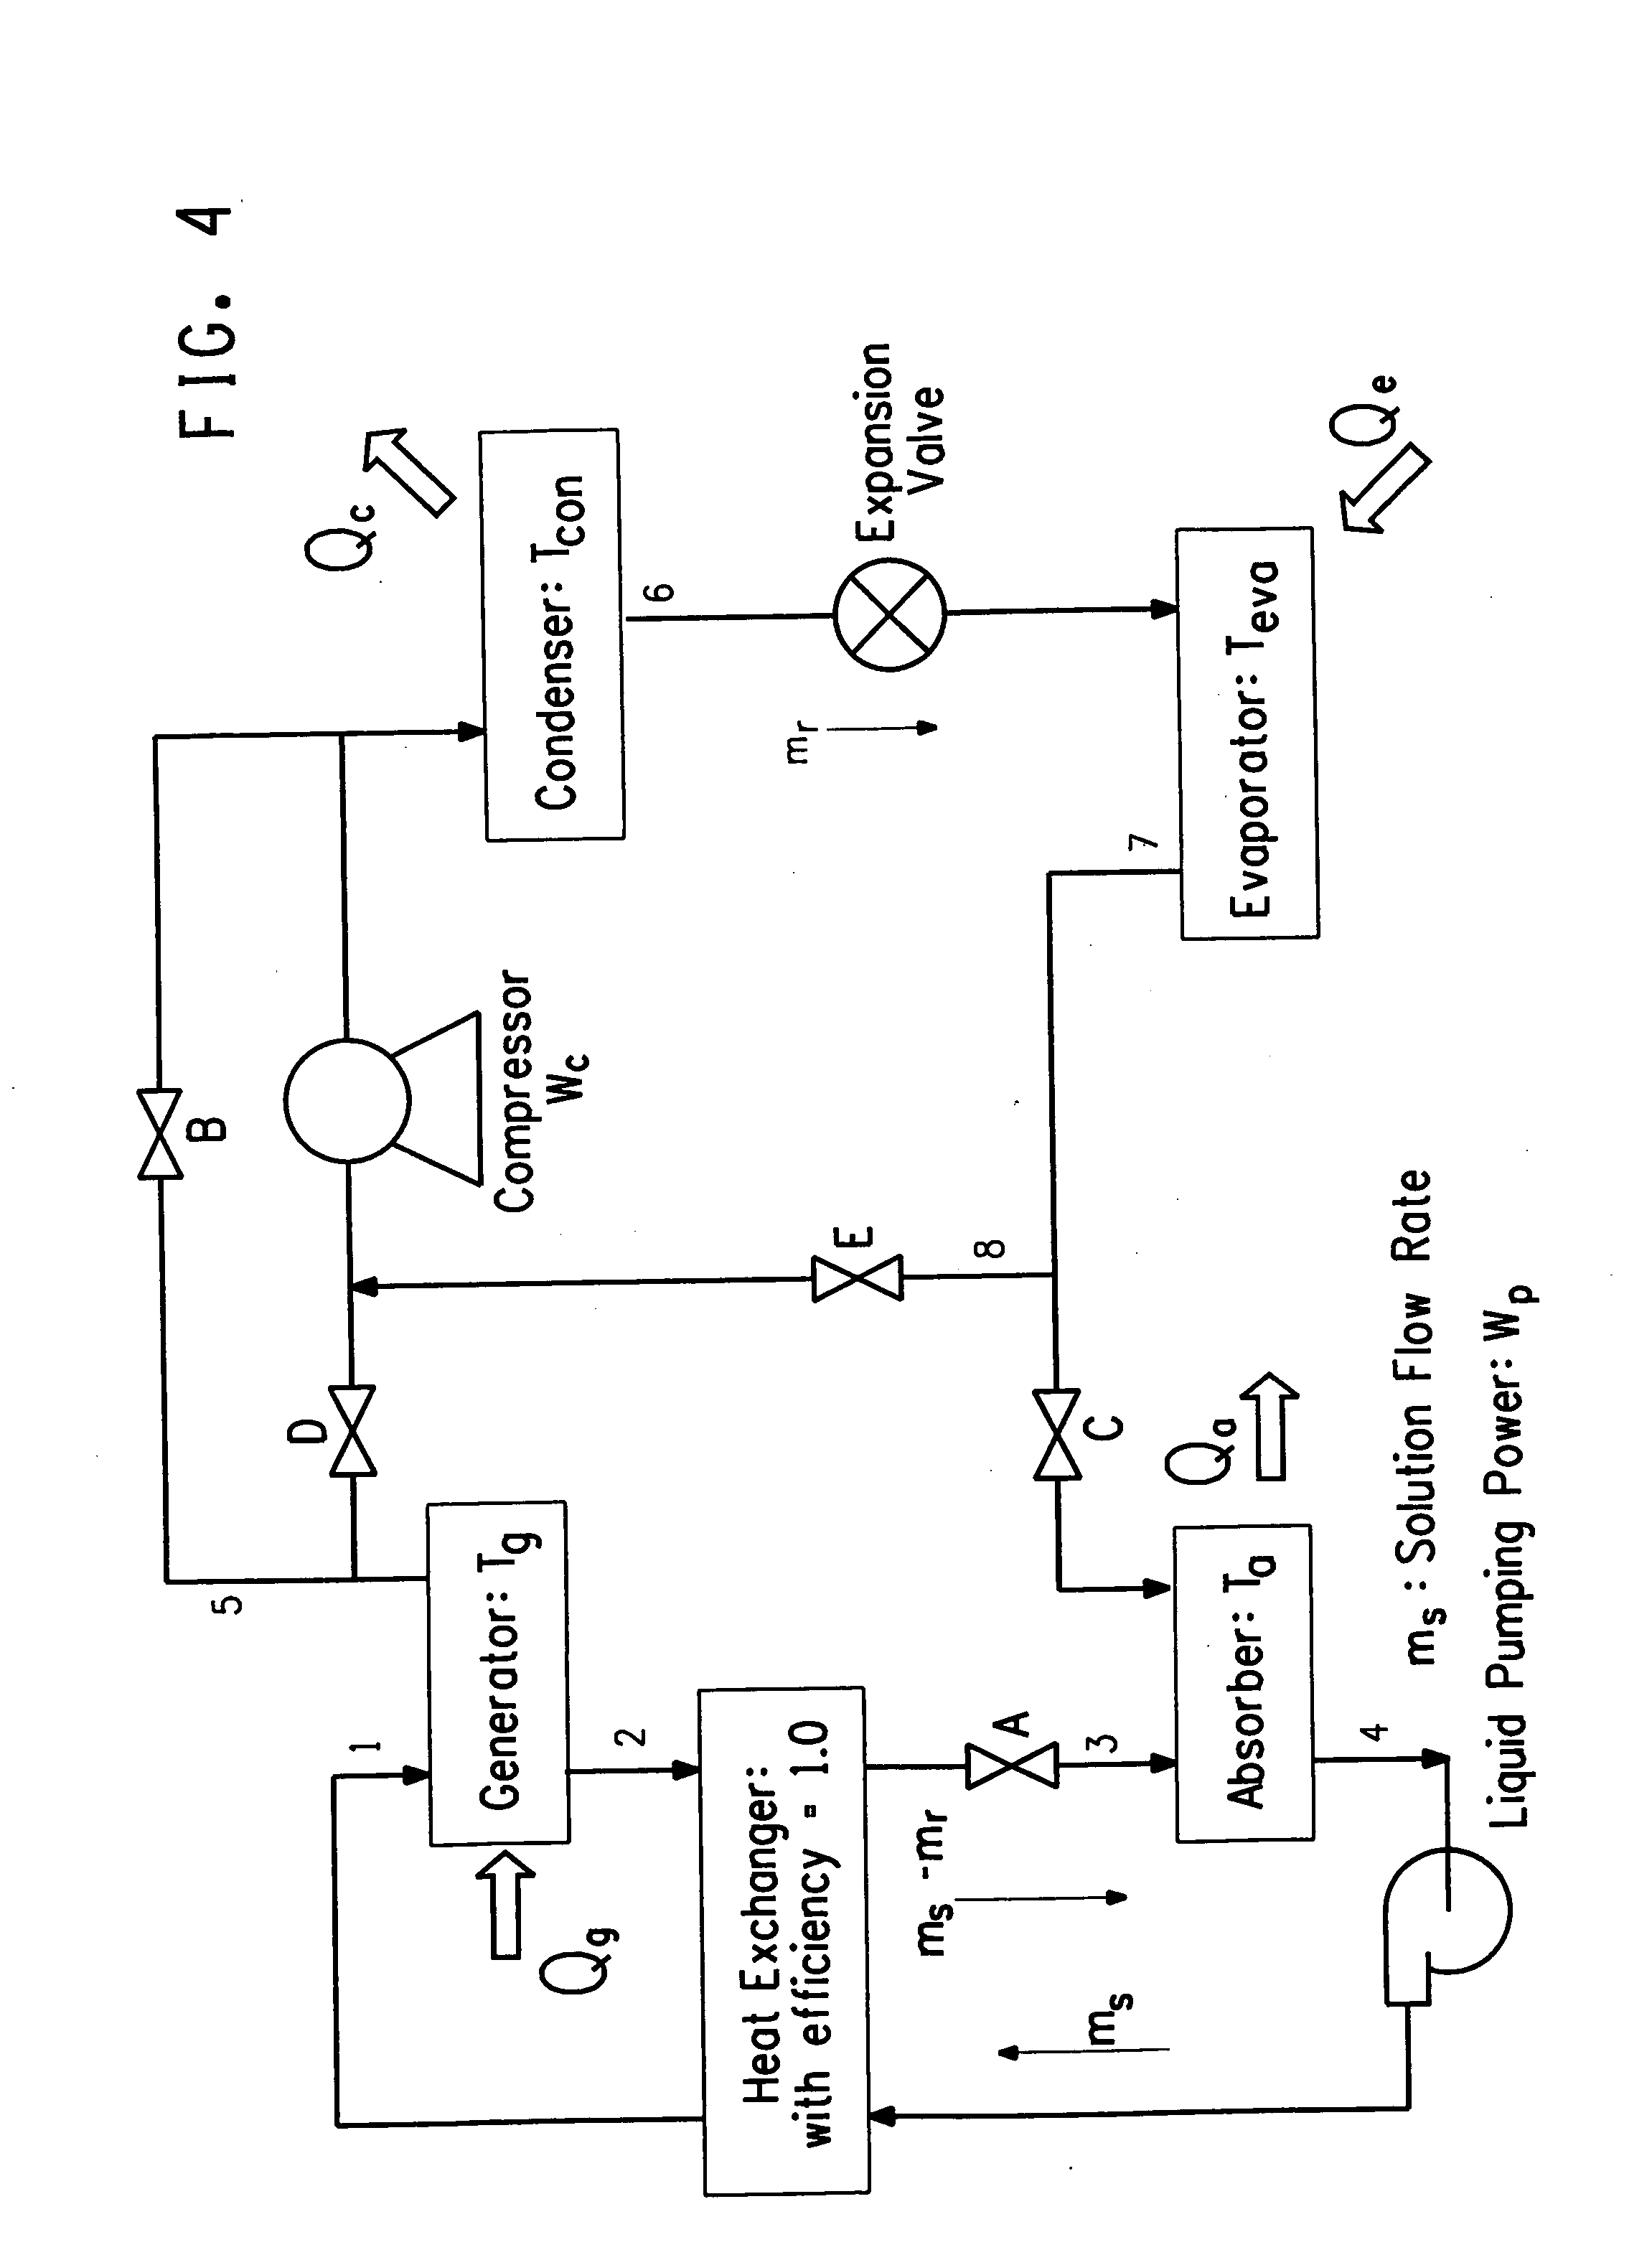 Patent US Hybrid vapor pression absorption cycle